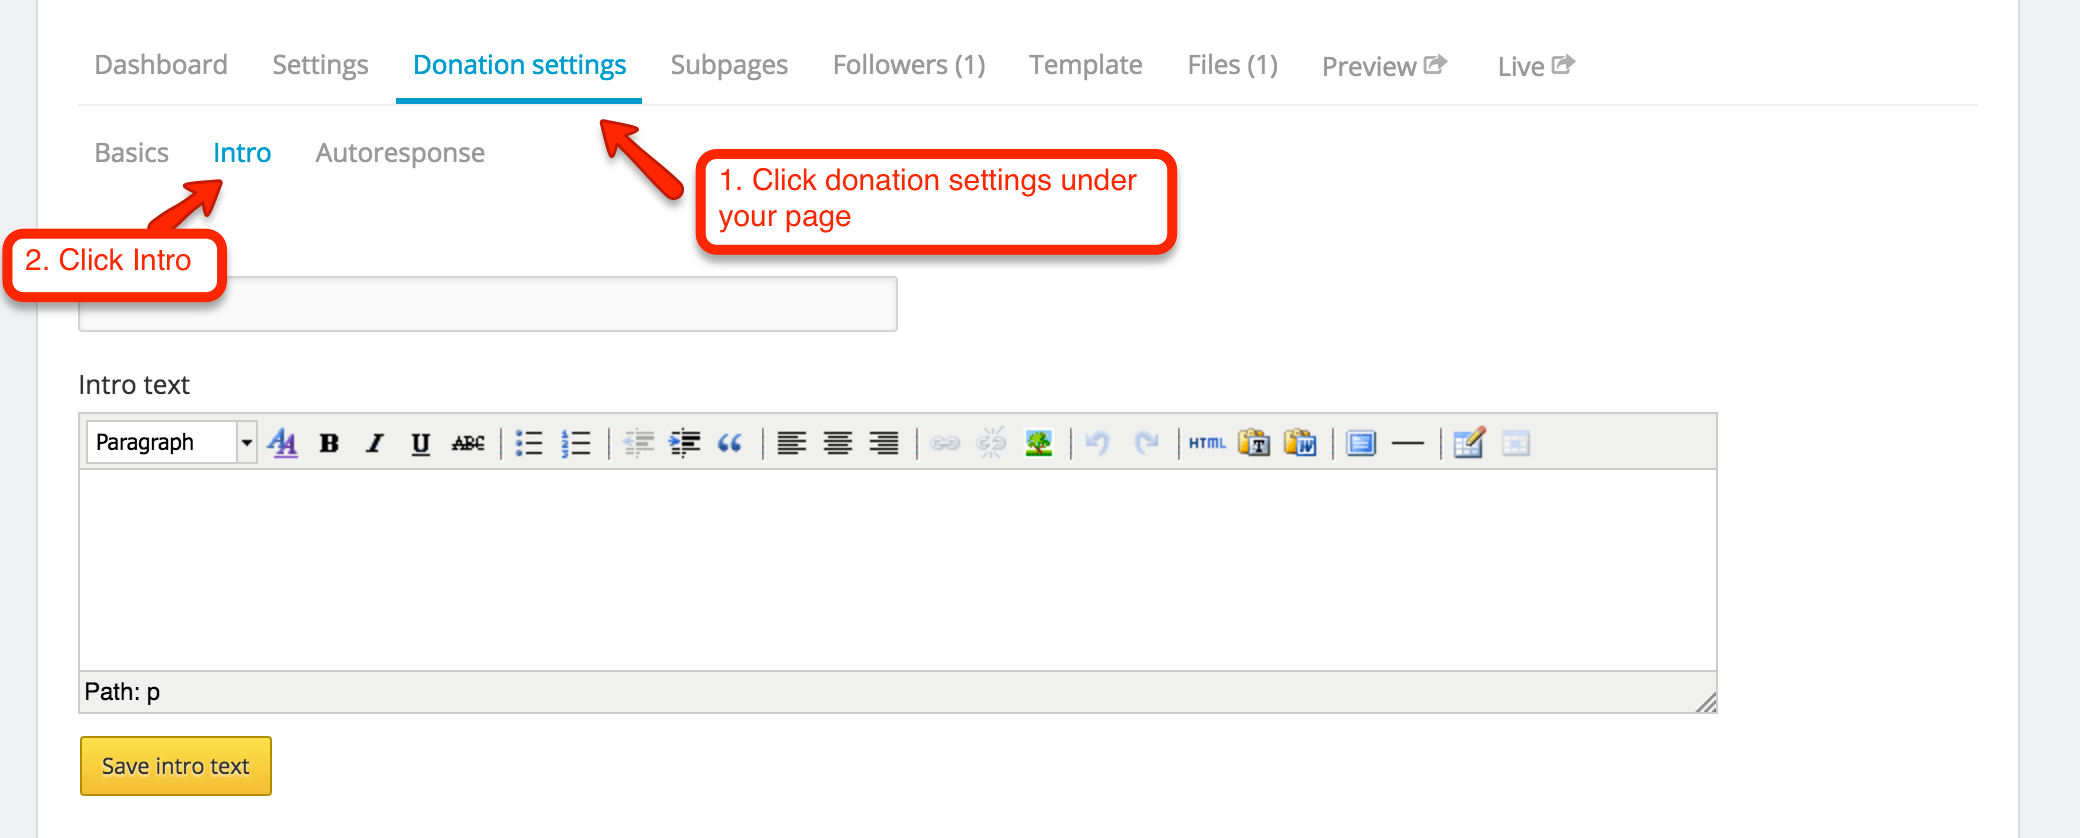 How do I add text in the donate page - Josh Harnack\'s suggestion